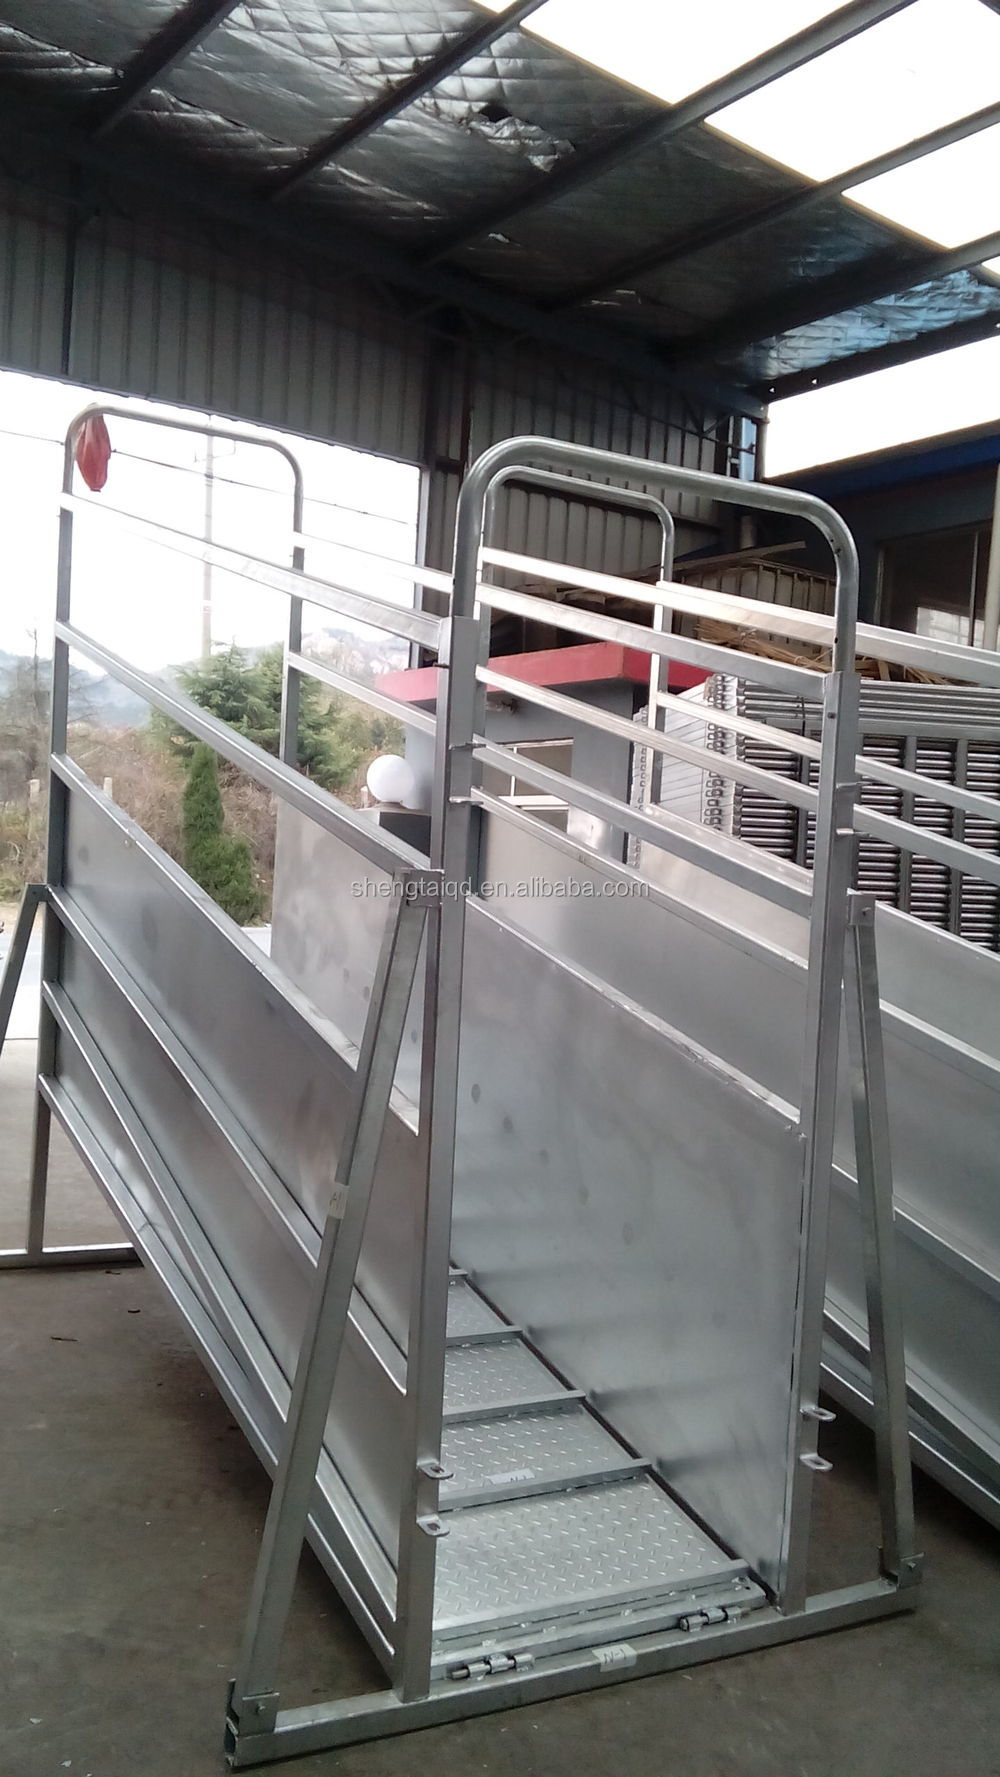 Cattle Ramps Livestock Ramps